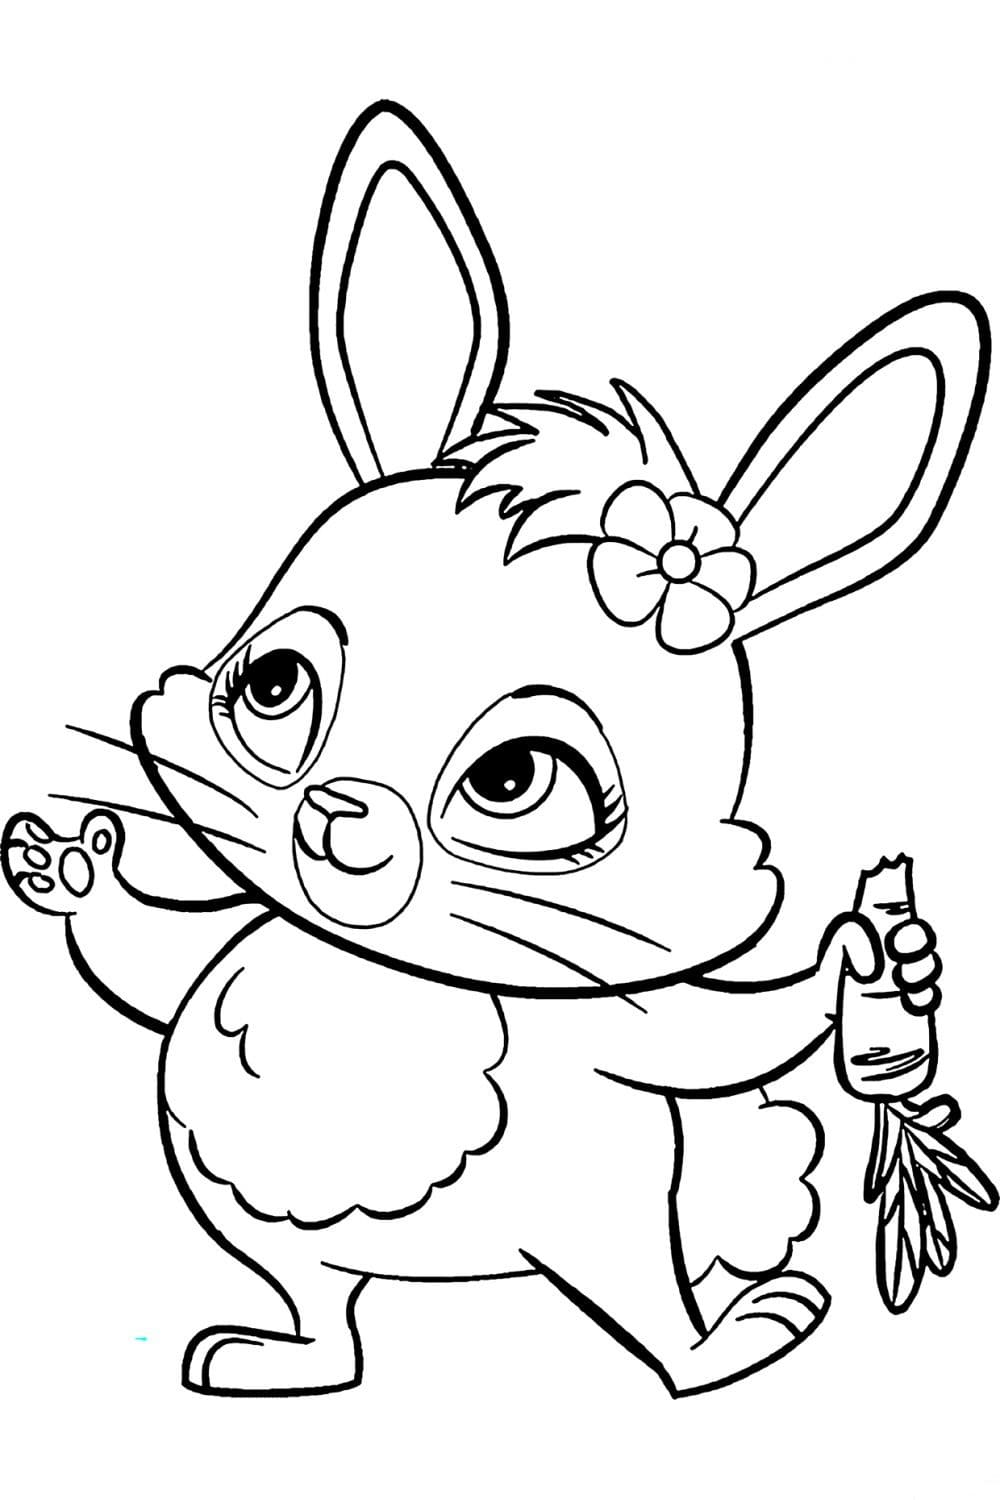 Enchantimals Coloring Pages. 70 Pictures. Print for Free